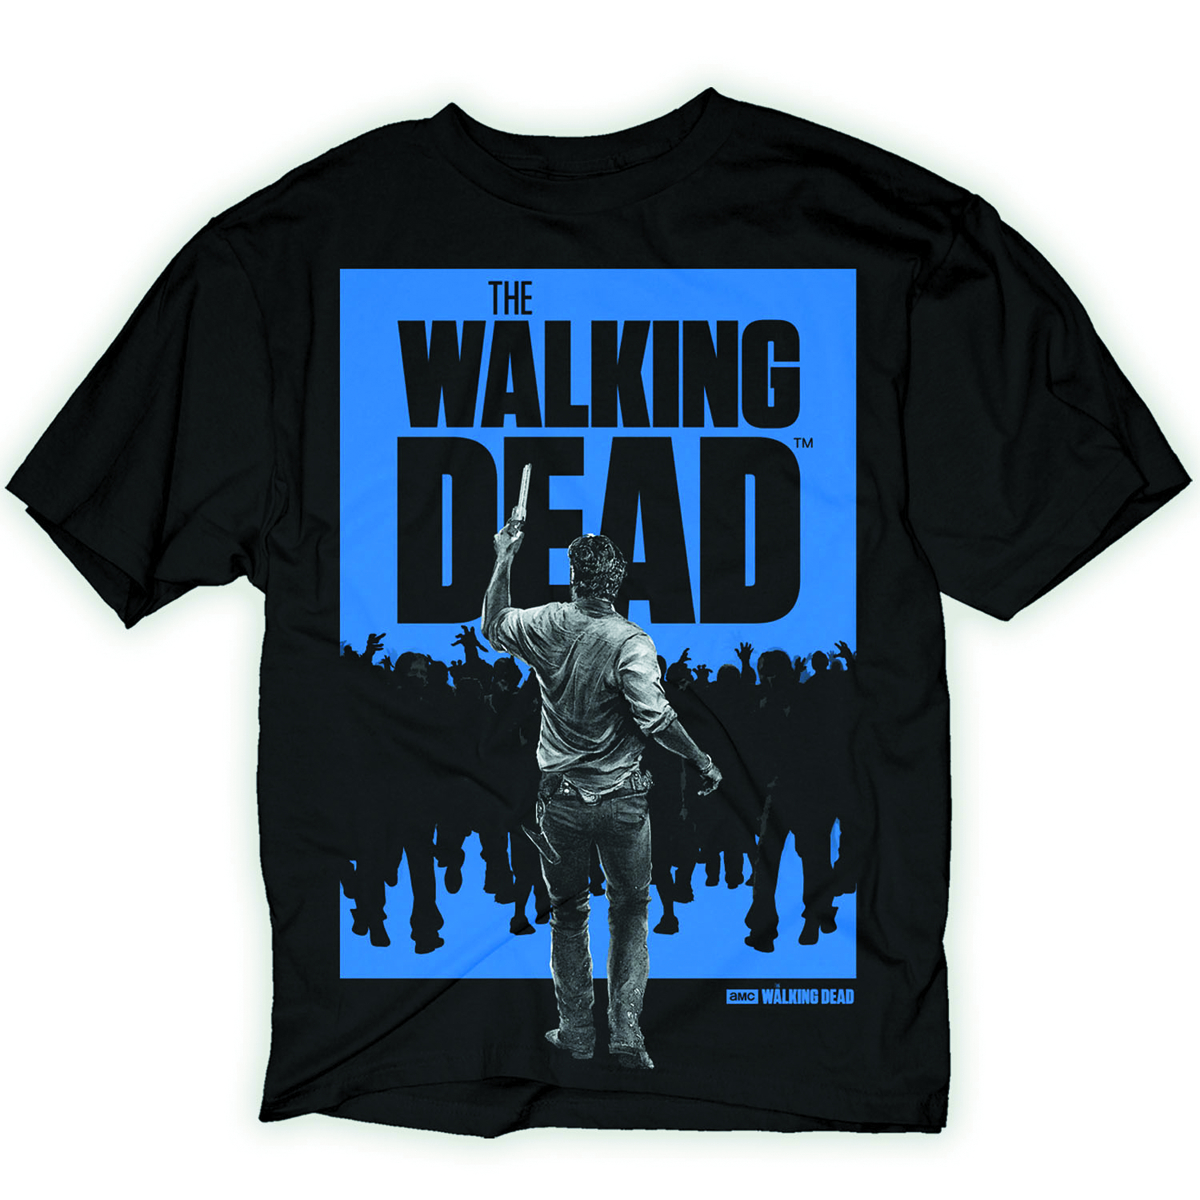 WALKING DEAD RICK WALKER PX BLK T/S XL